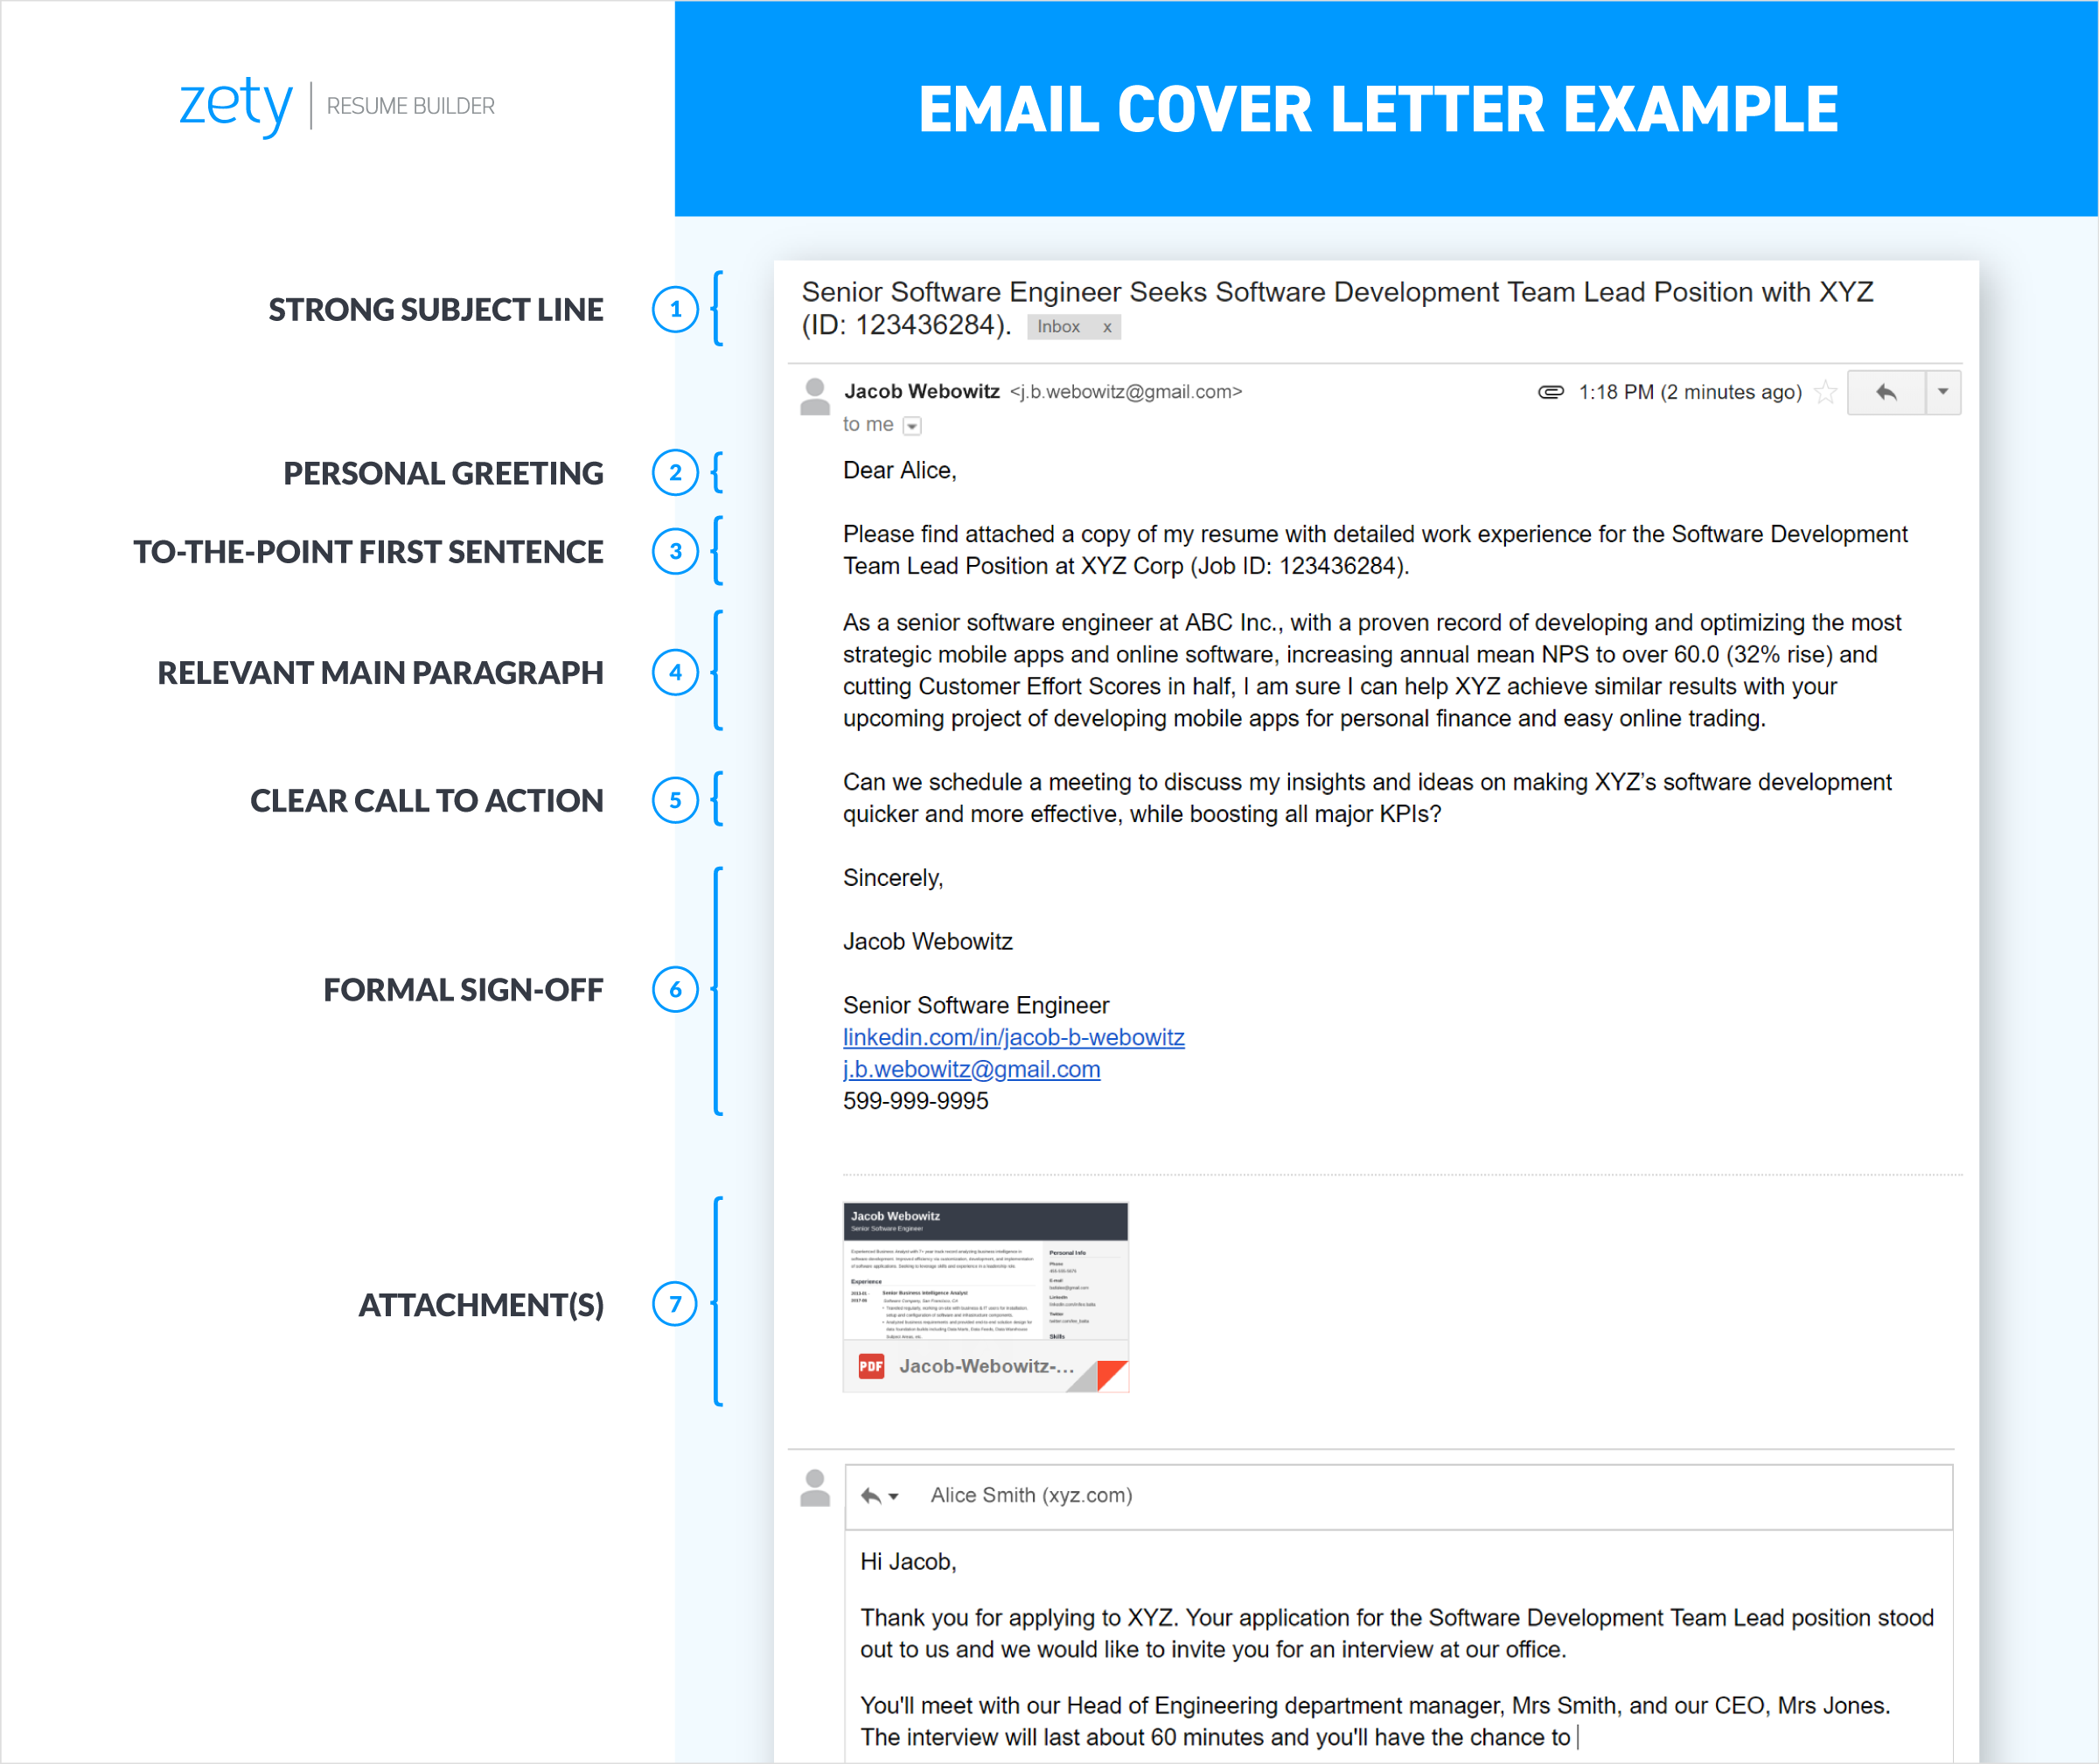 Cover Letter Email Examples from cdn-images.zety.com